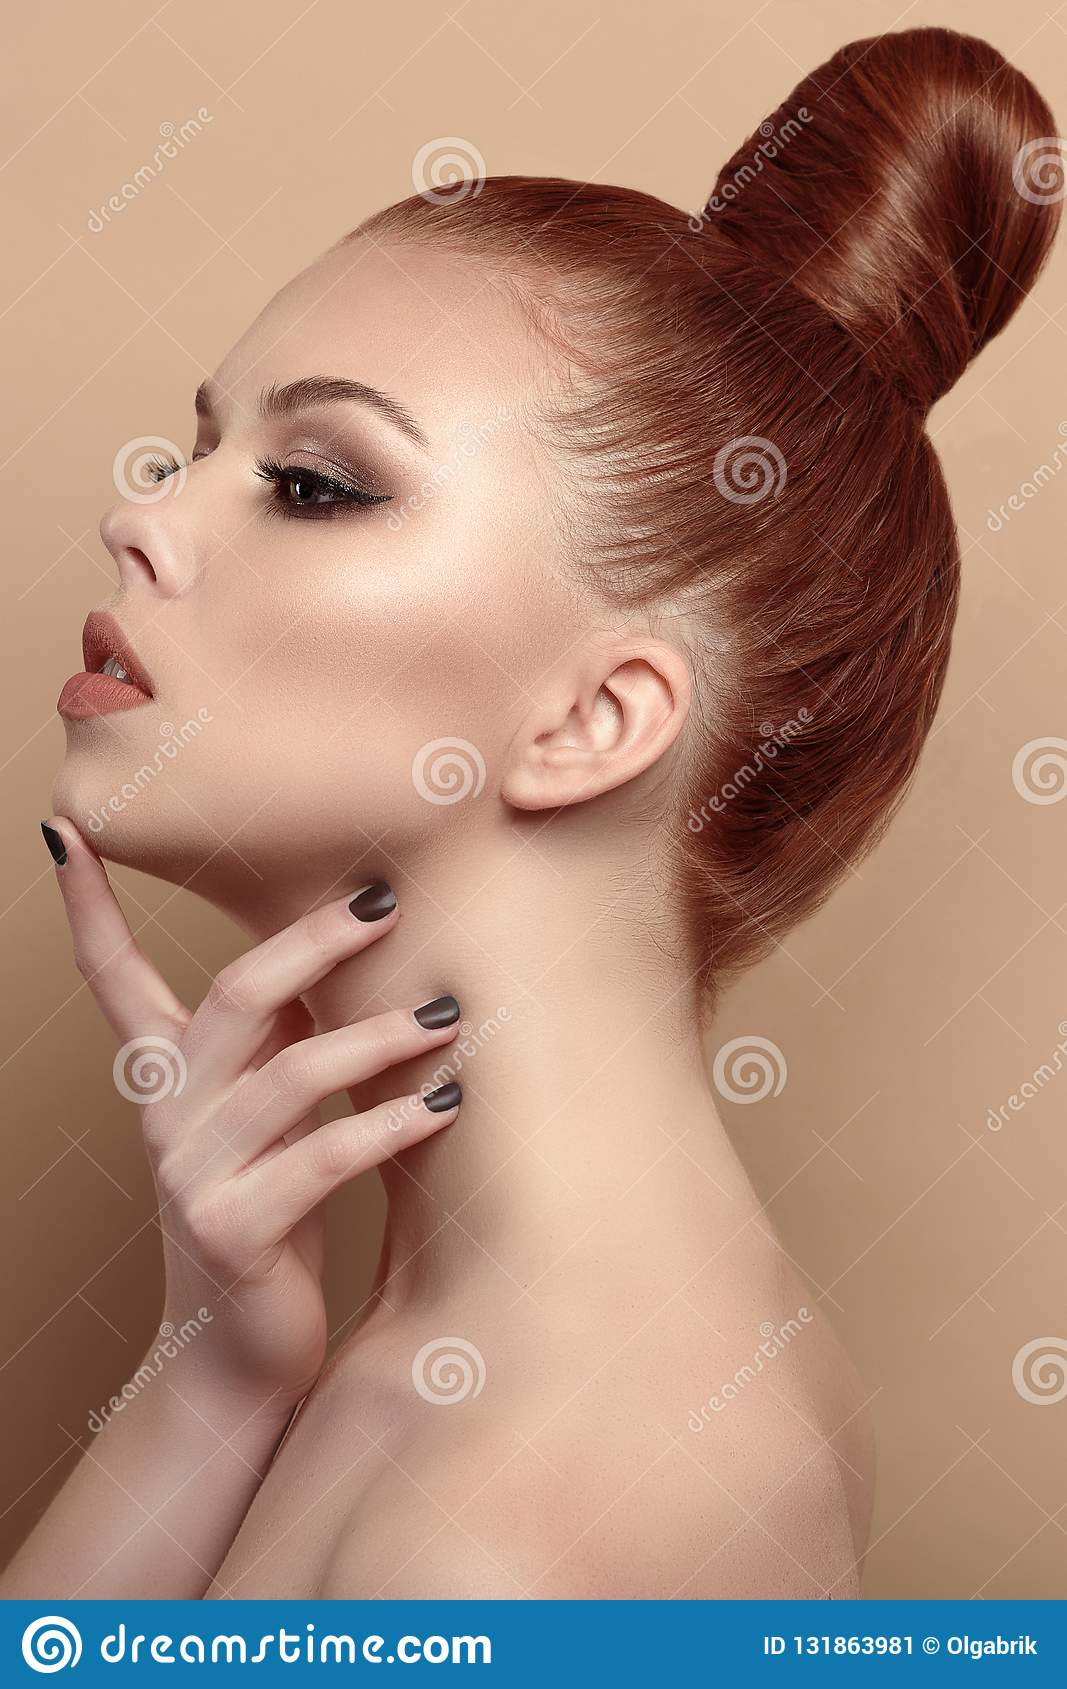 Close up profile portrait of beautiful red-haired model with her hair scraped back into a high bun